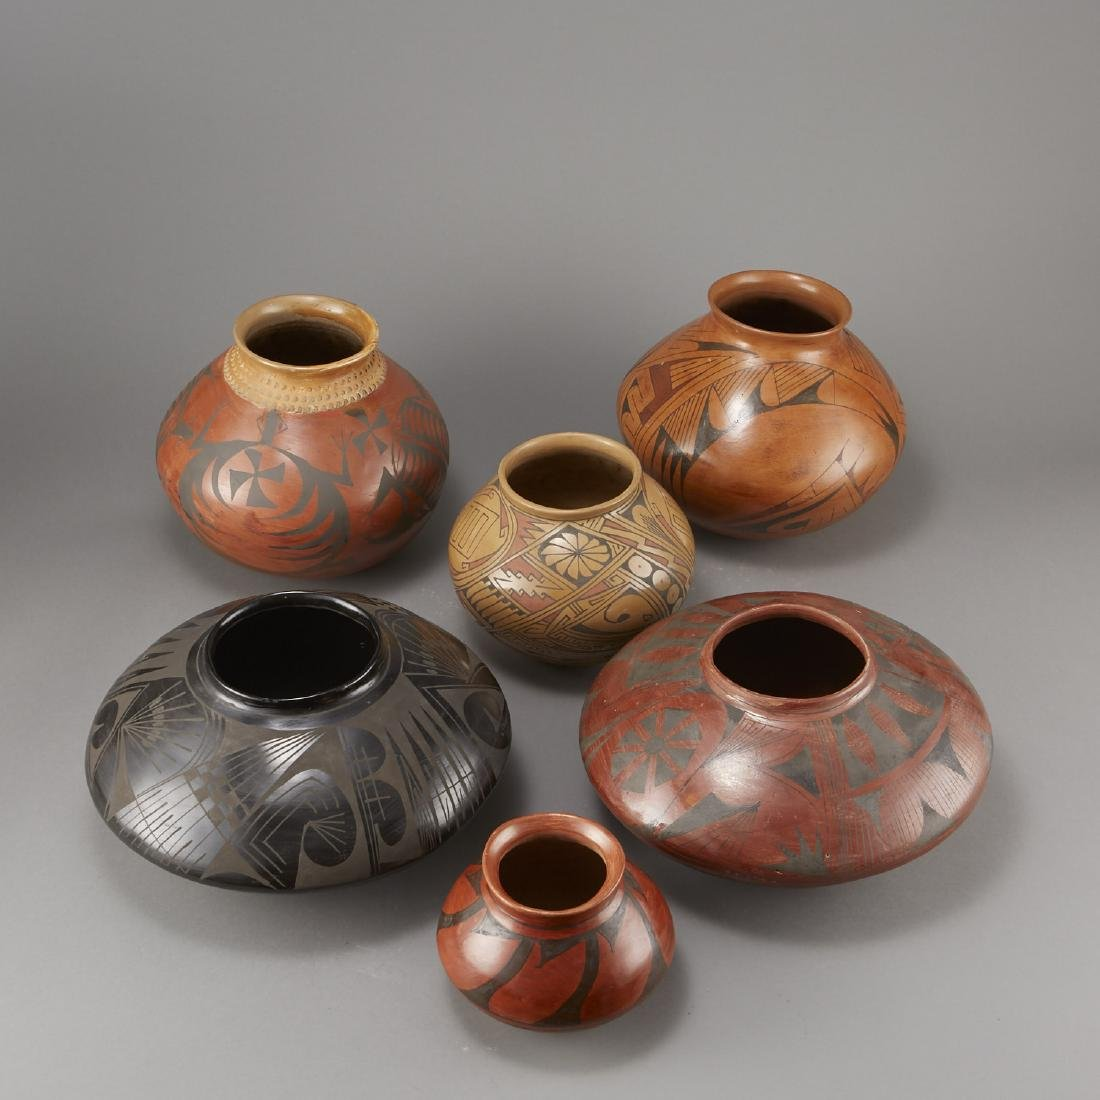 6 Pieces of Polychrome Pottery